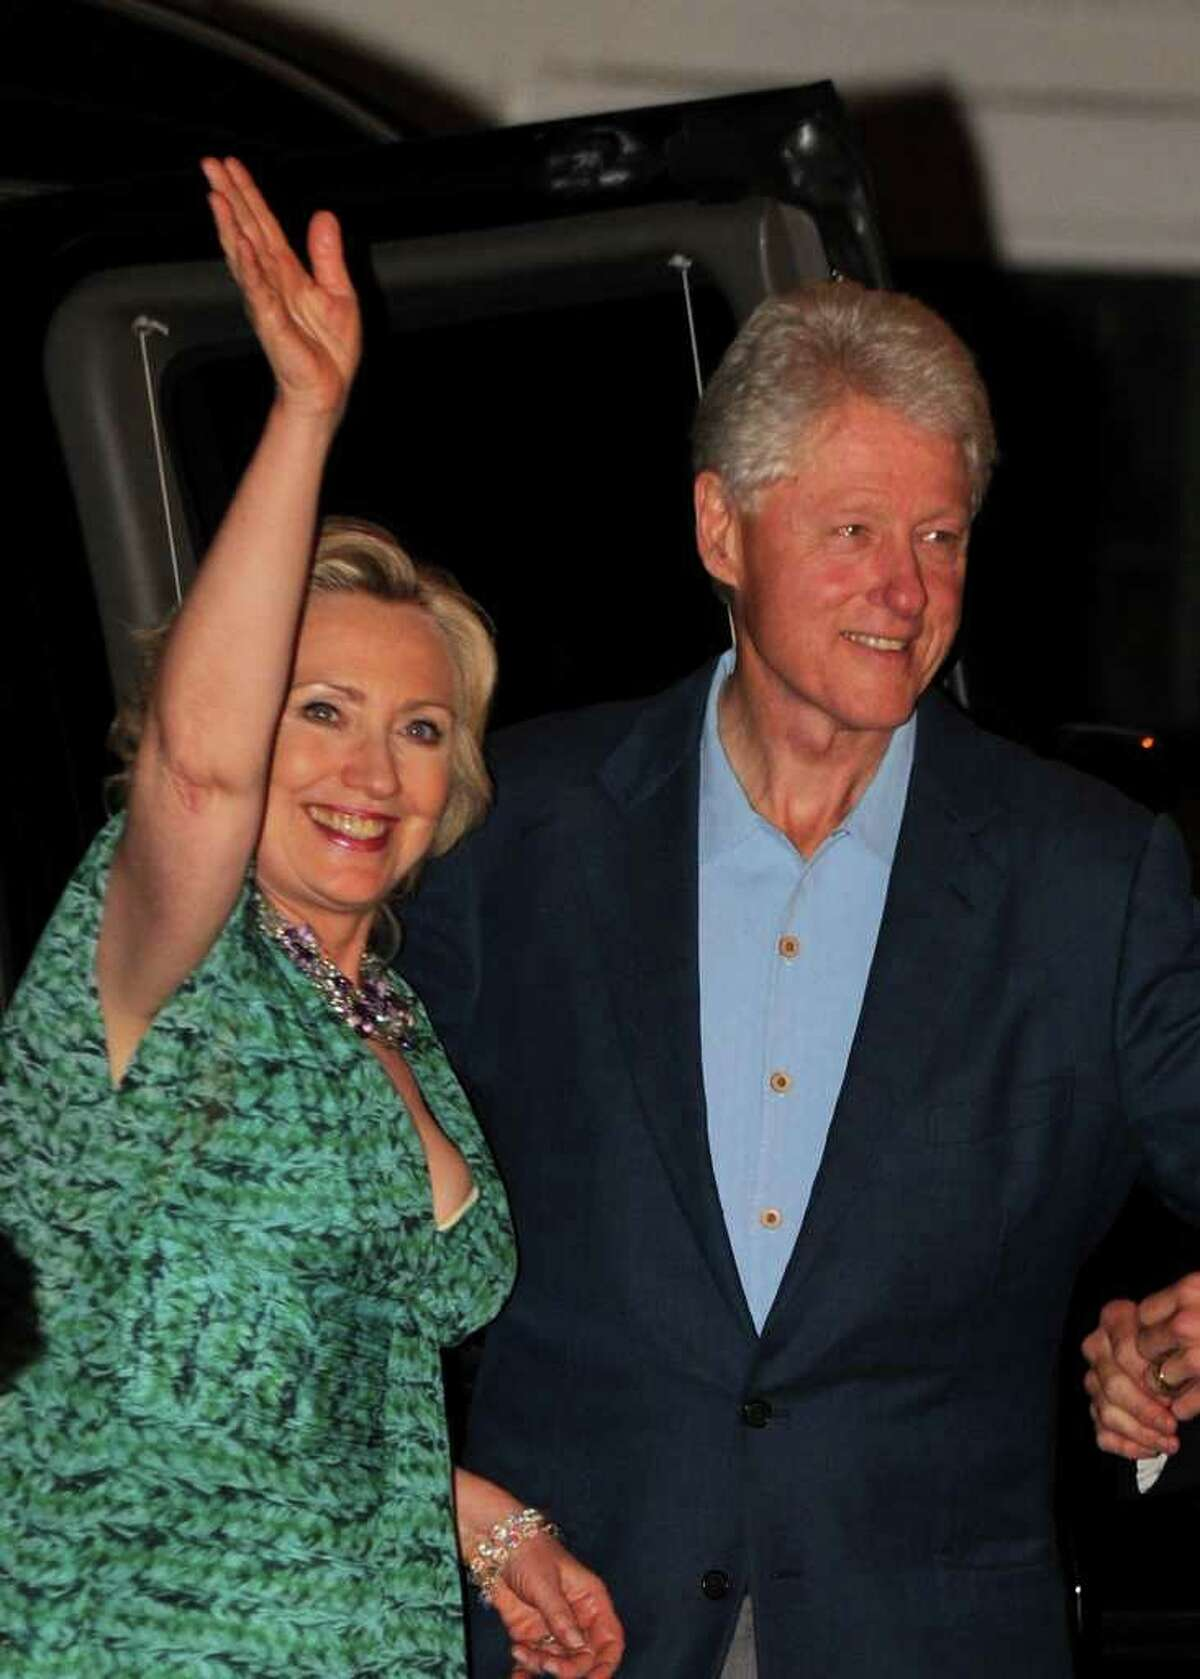 RHINEBECK, NY - JULY 30: Secretary of State Hillary Clinton and former U.S. President Bill Clinton attend Chelsea Clinton & Marc Mezvinsky's pre-wedding Party at the Beekman Arms Inn on July 30, 2010 in Rhinebeck, New York. (Photo by Bryan Bedder/Getty Images) *** Local Caption *** Hillary Clinton;Bill Clinton